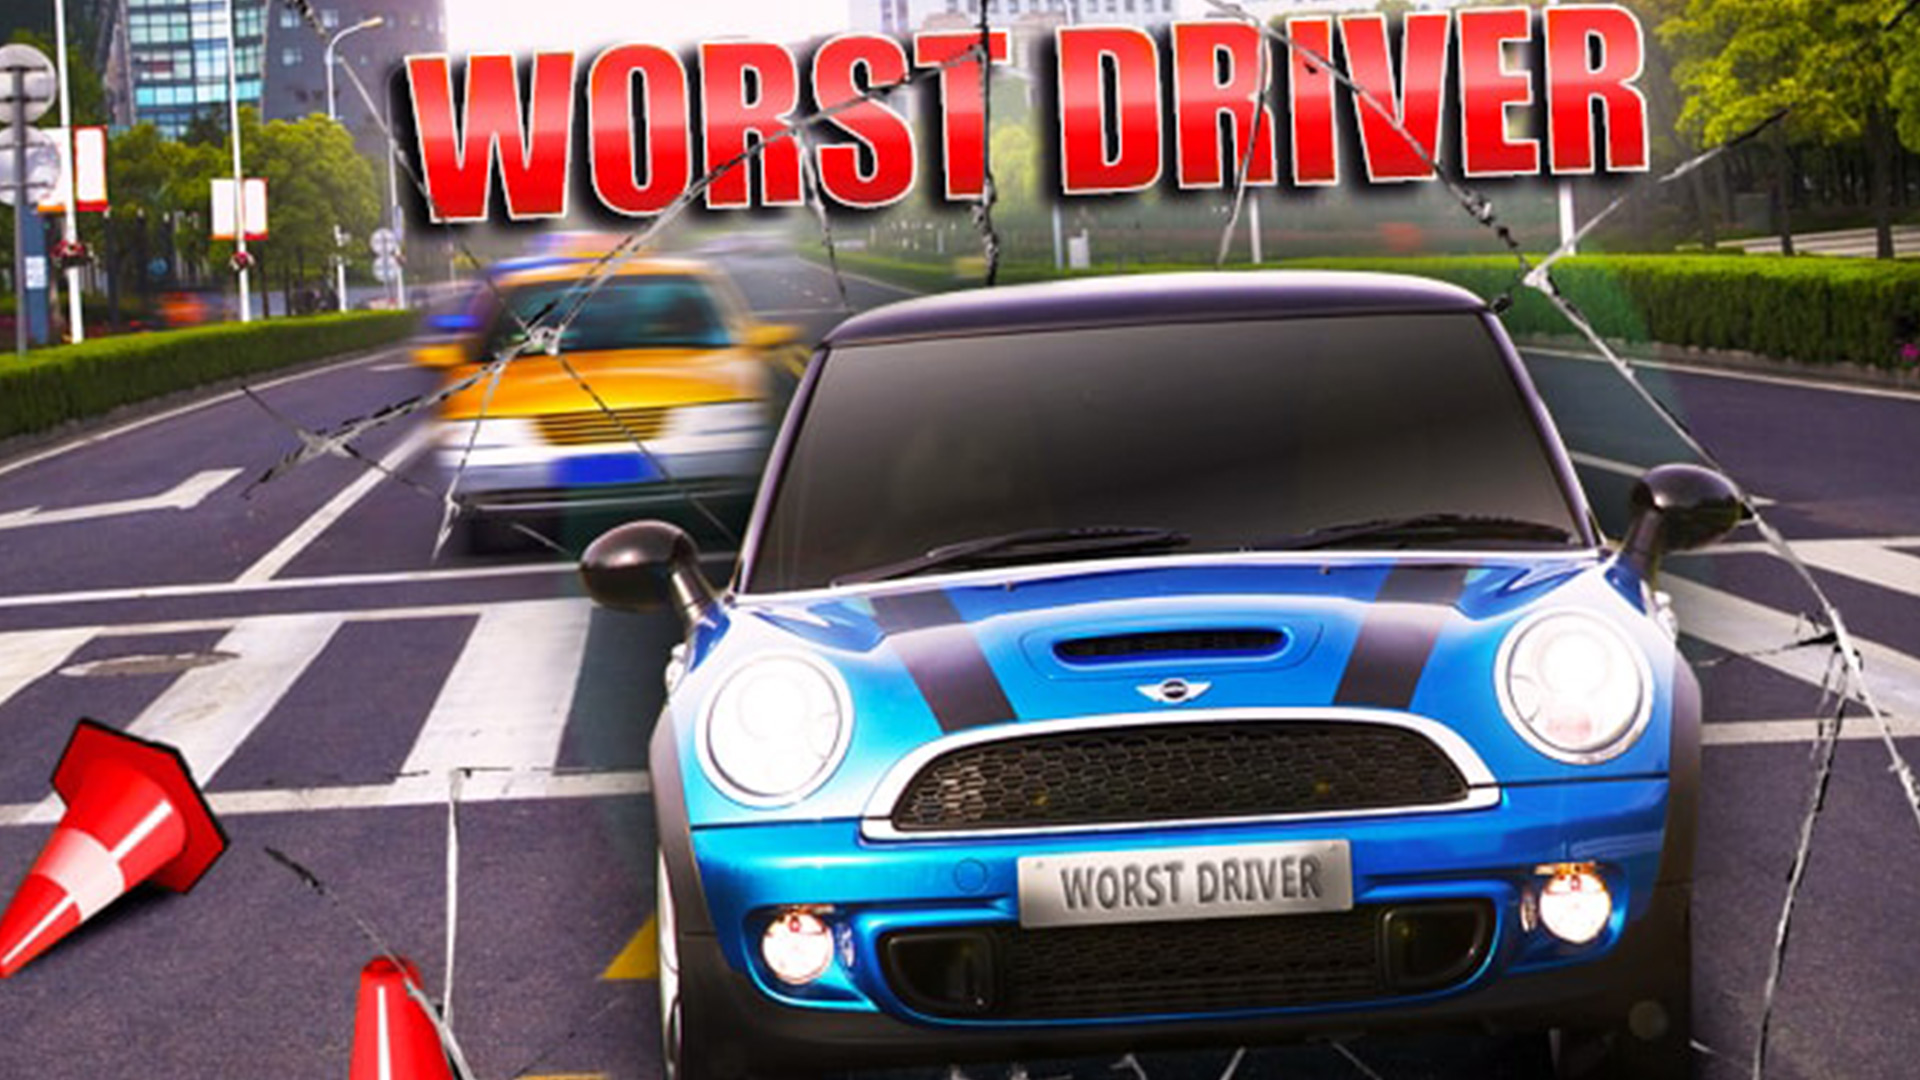 Worst Driver Image